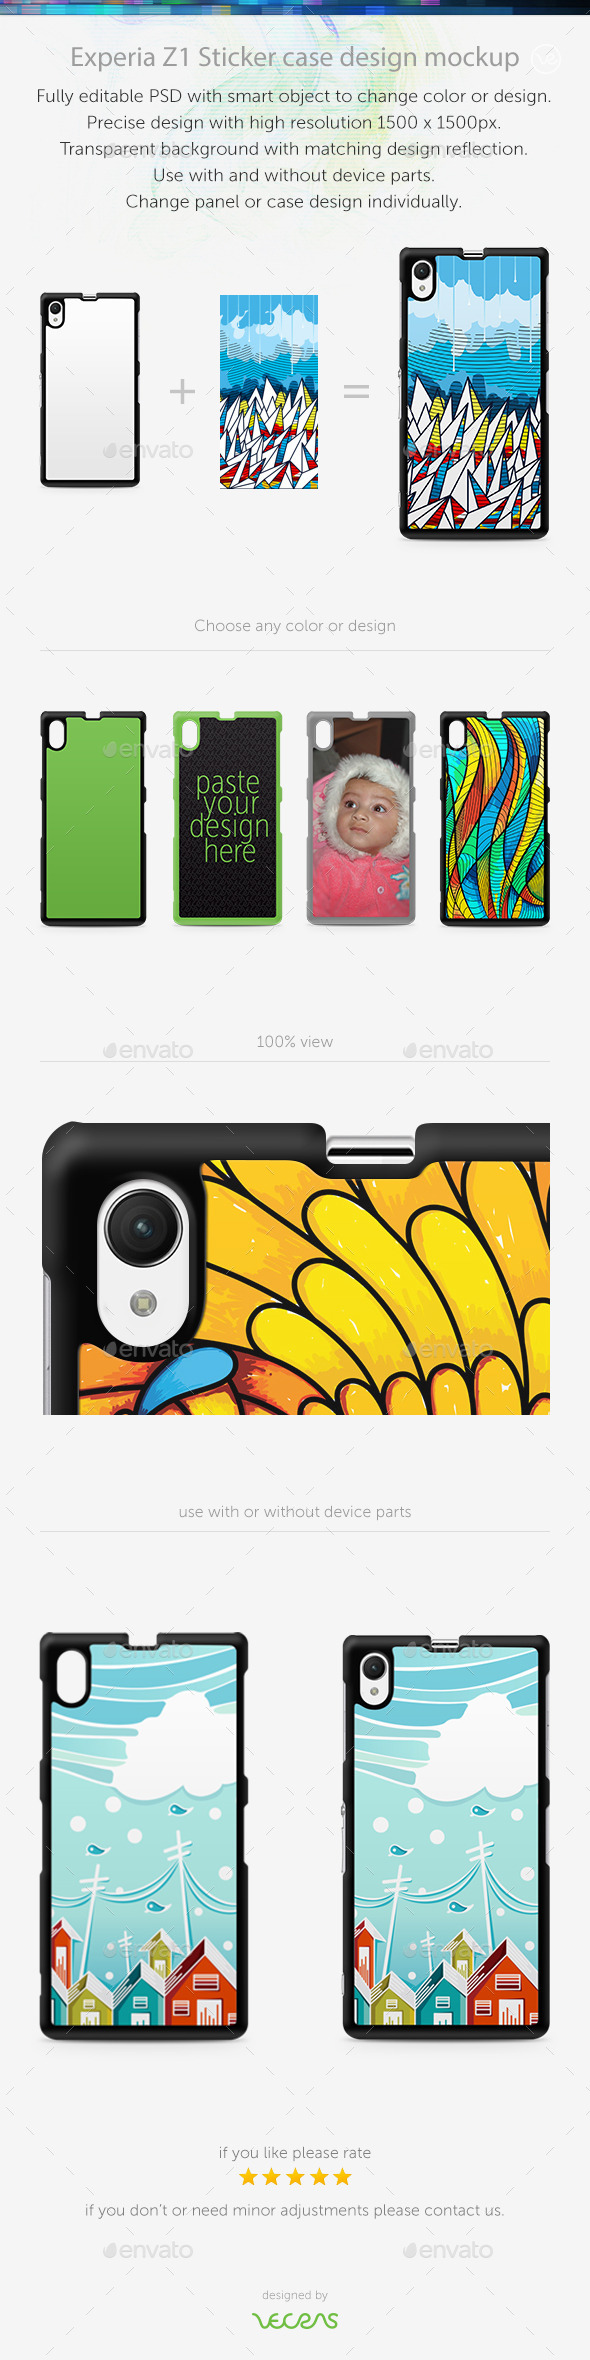 Experia Z1 Sticker Case Design Mockup - Mobile Displays